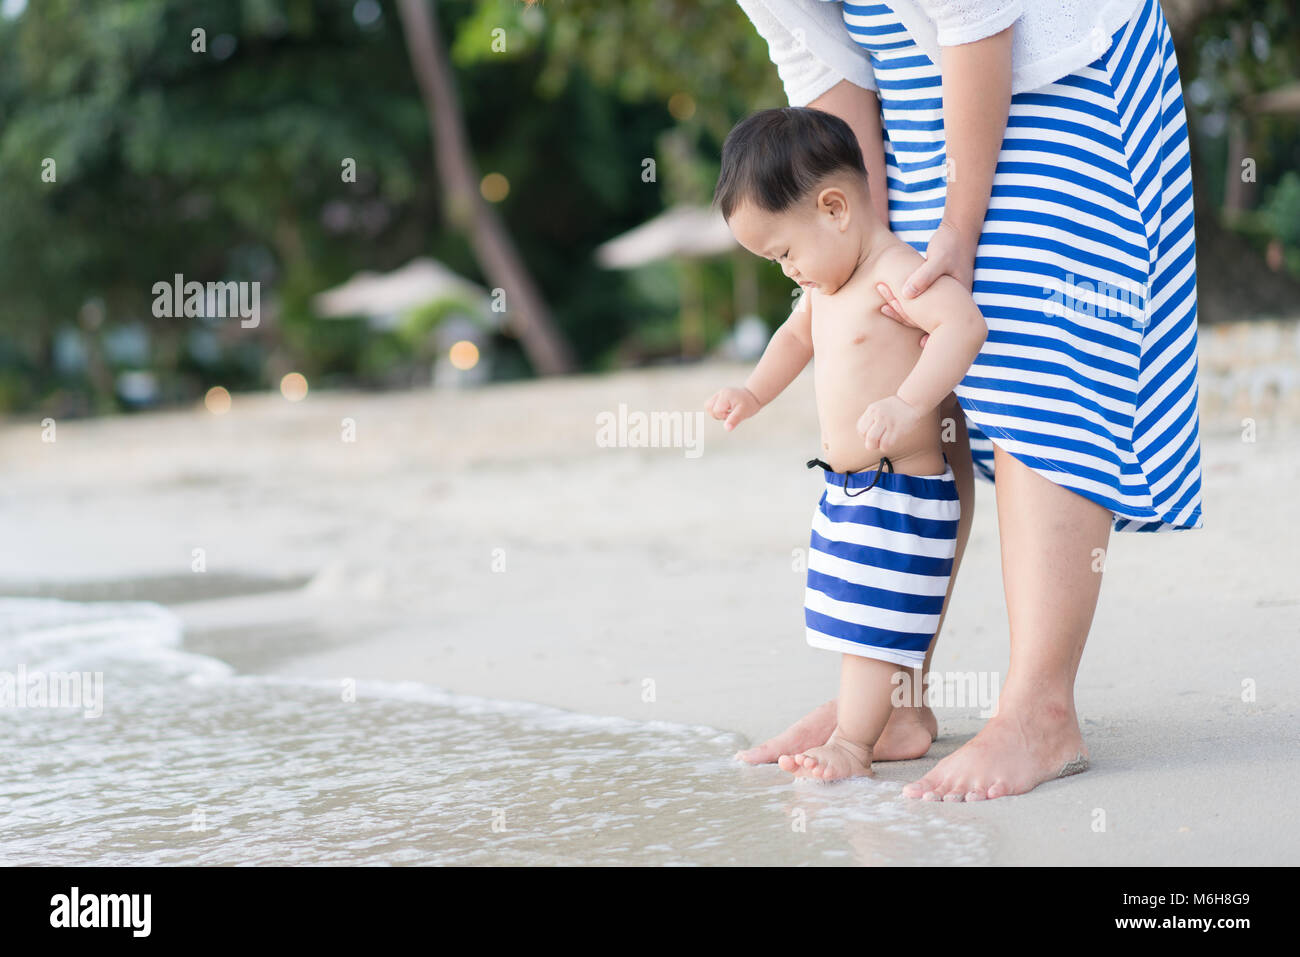 Asian Toddler baby boy with mother doing his first steps on the sand near the bank - Stock Image